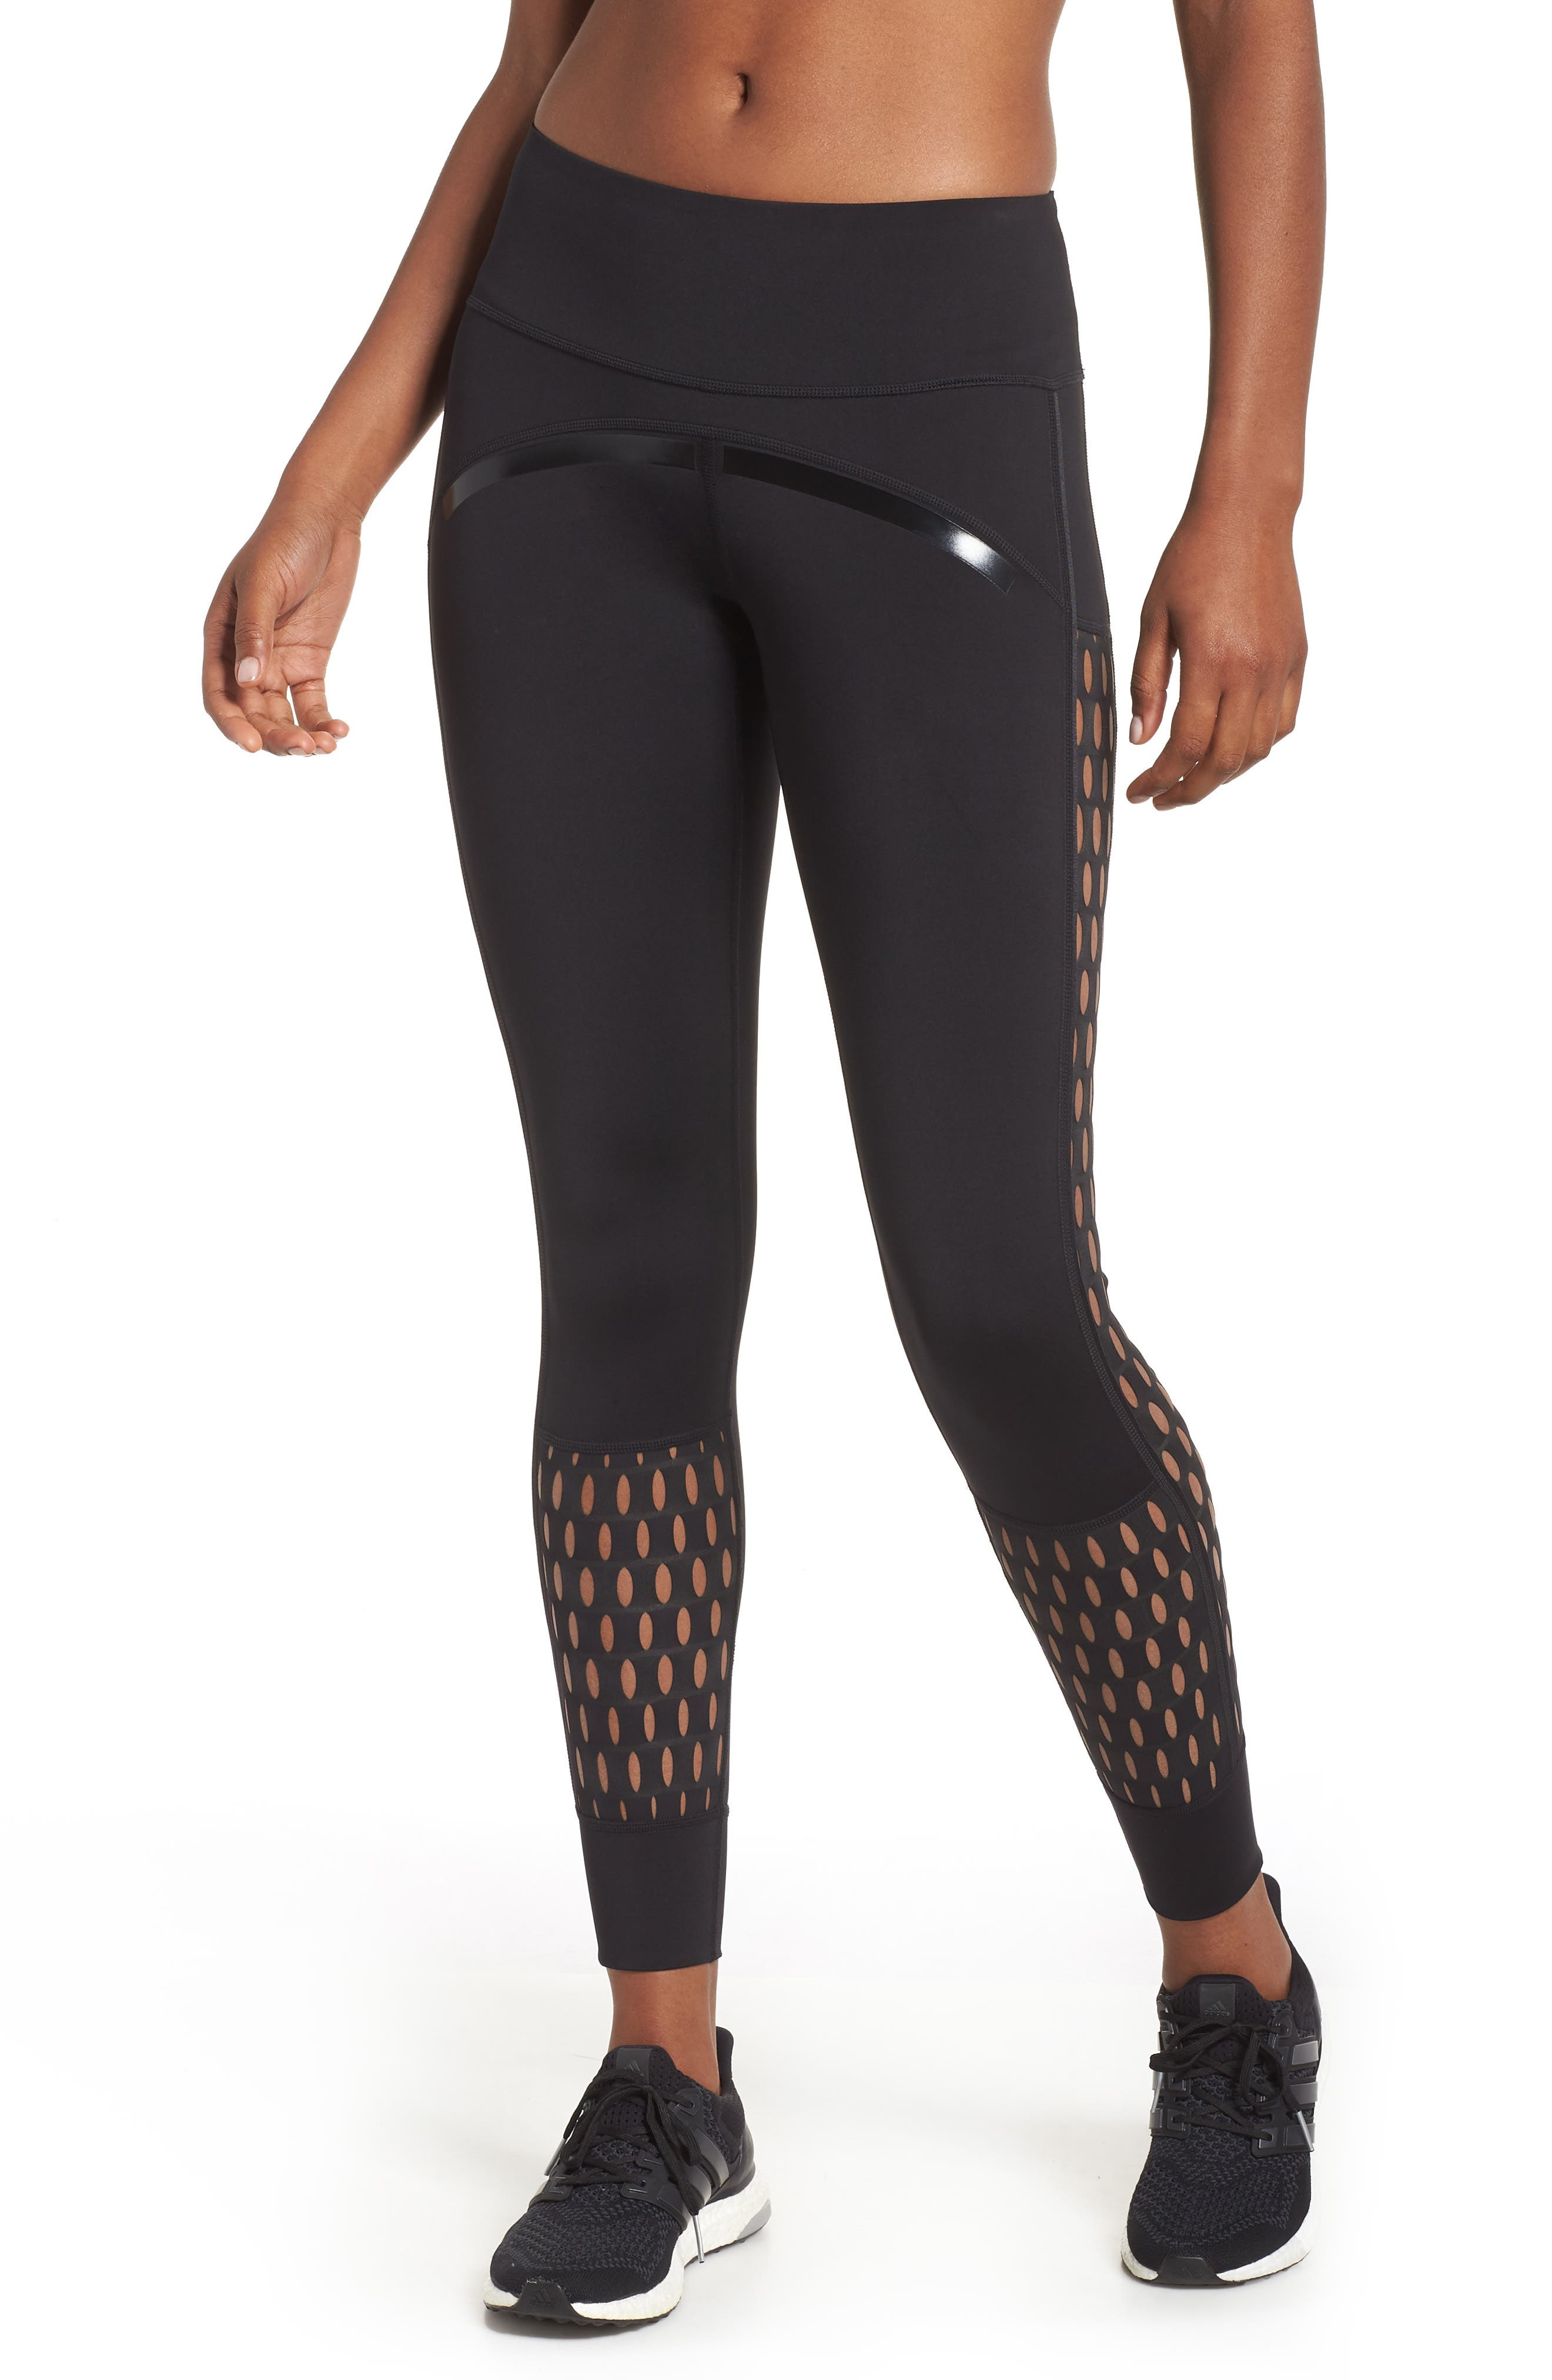 Run Training Tights,                             Main thumbnail 1, color,                             001